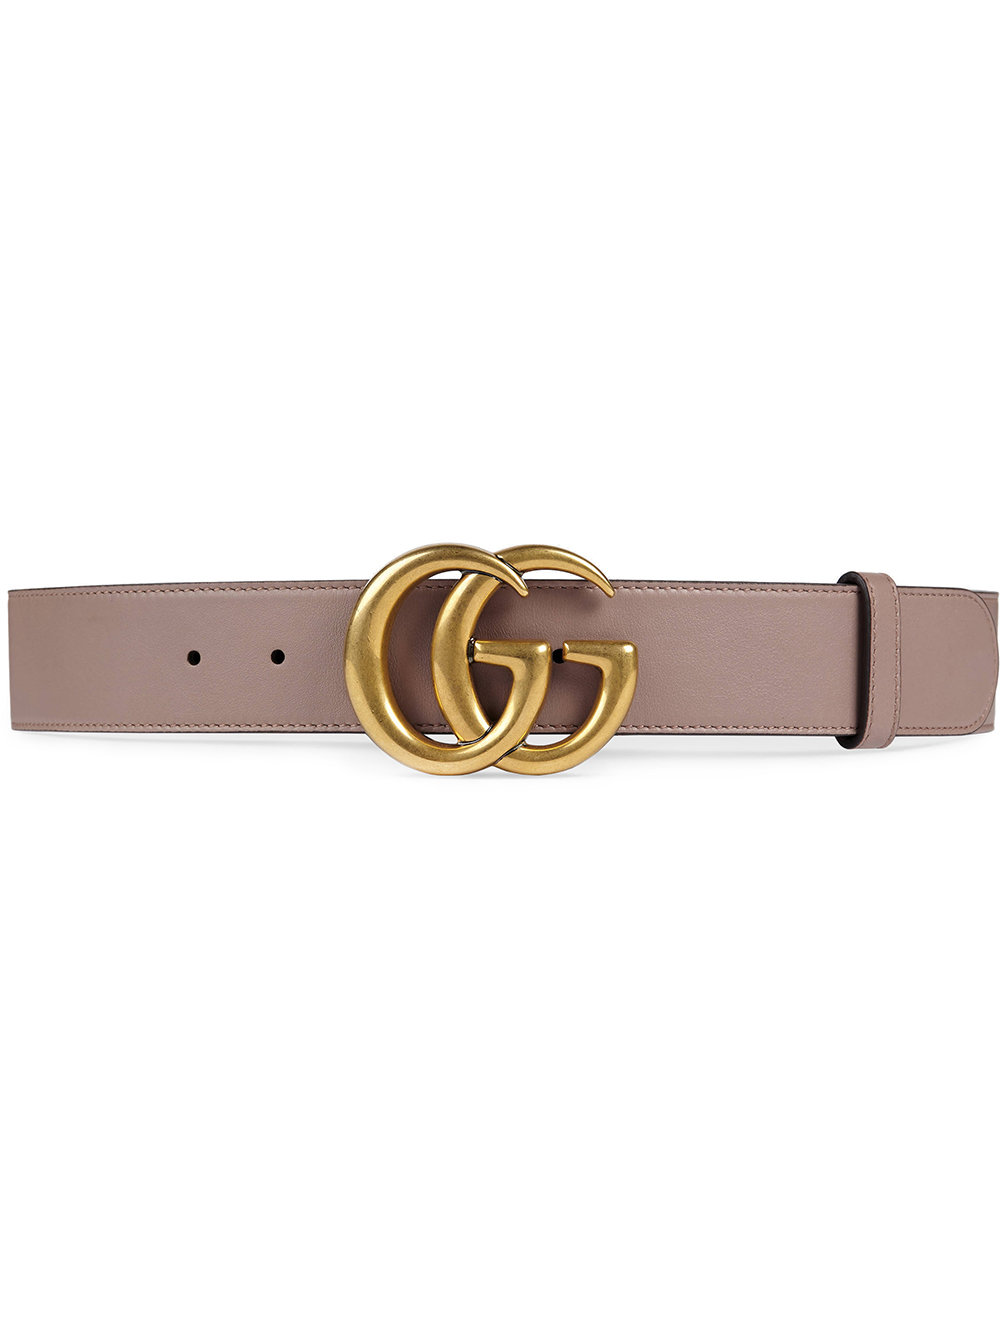 4f591a7206 Gucci Leather belt with Double G buckle - Pink - Glami.sk